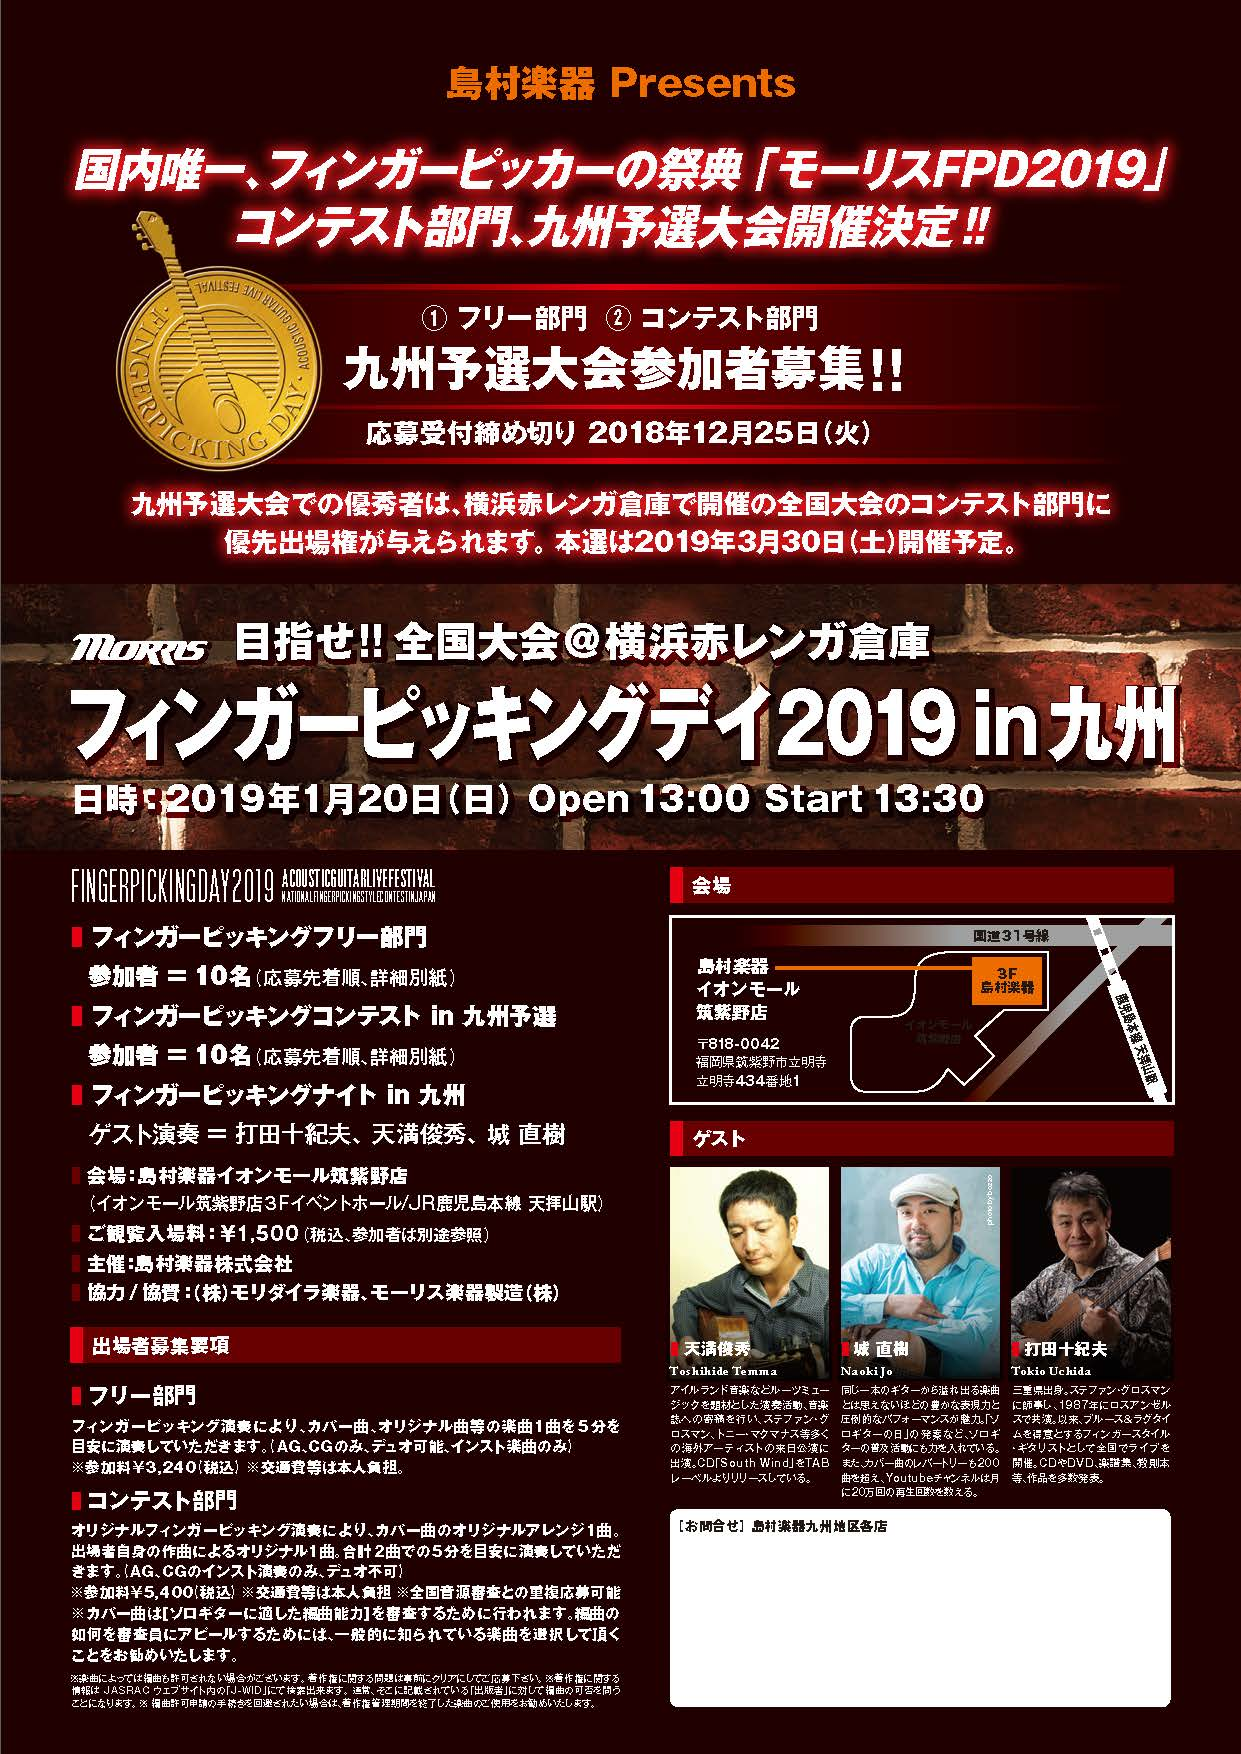 MORRIS FINGER PICKING DAY 2019の九州予選大会